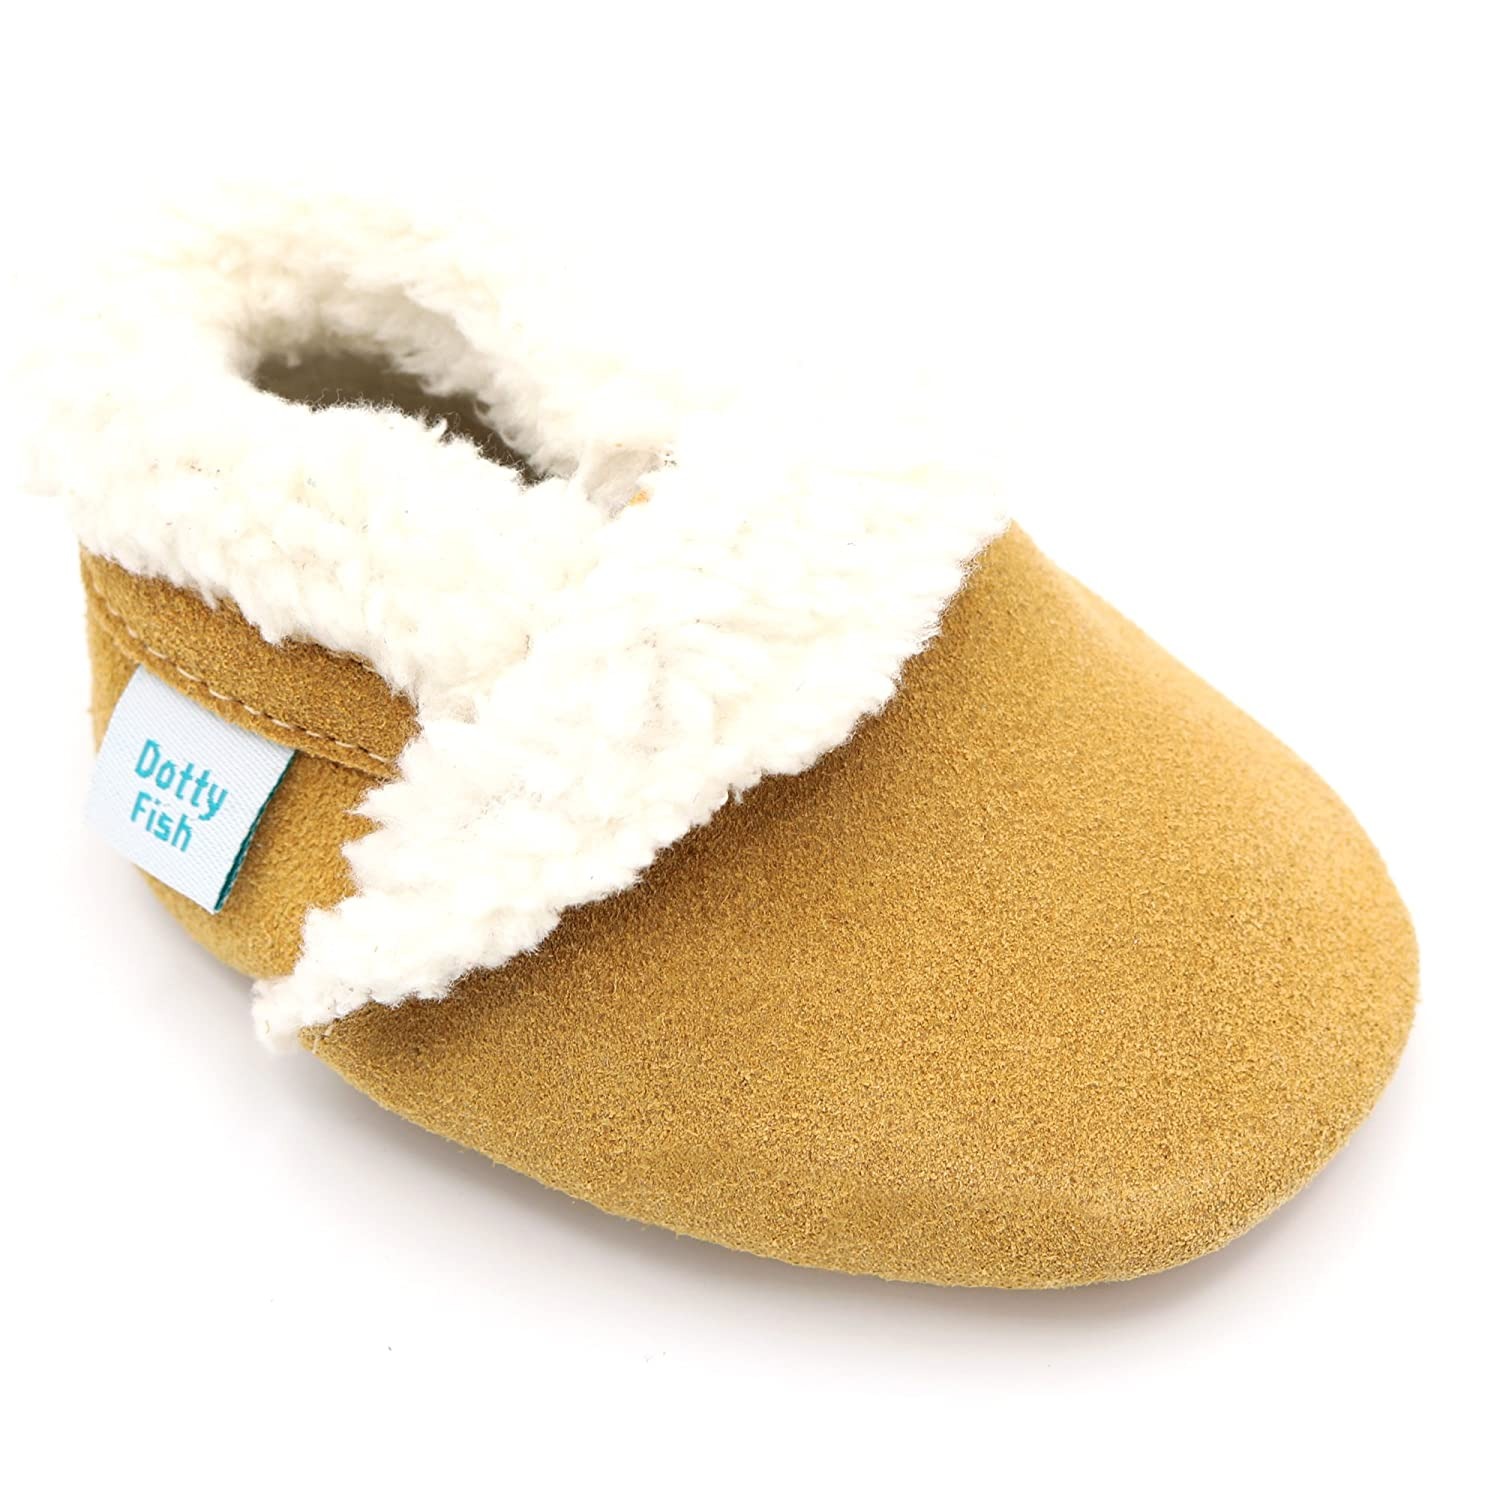 Dotty Fish Soft Leather Baby Suede Slippers with Fleece Lining. US 3 – US 11.